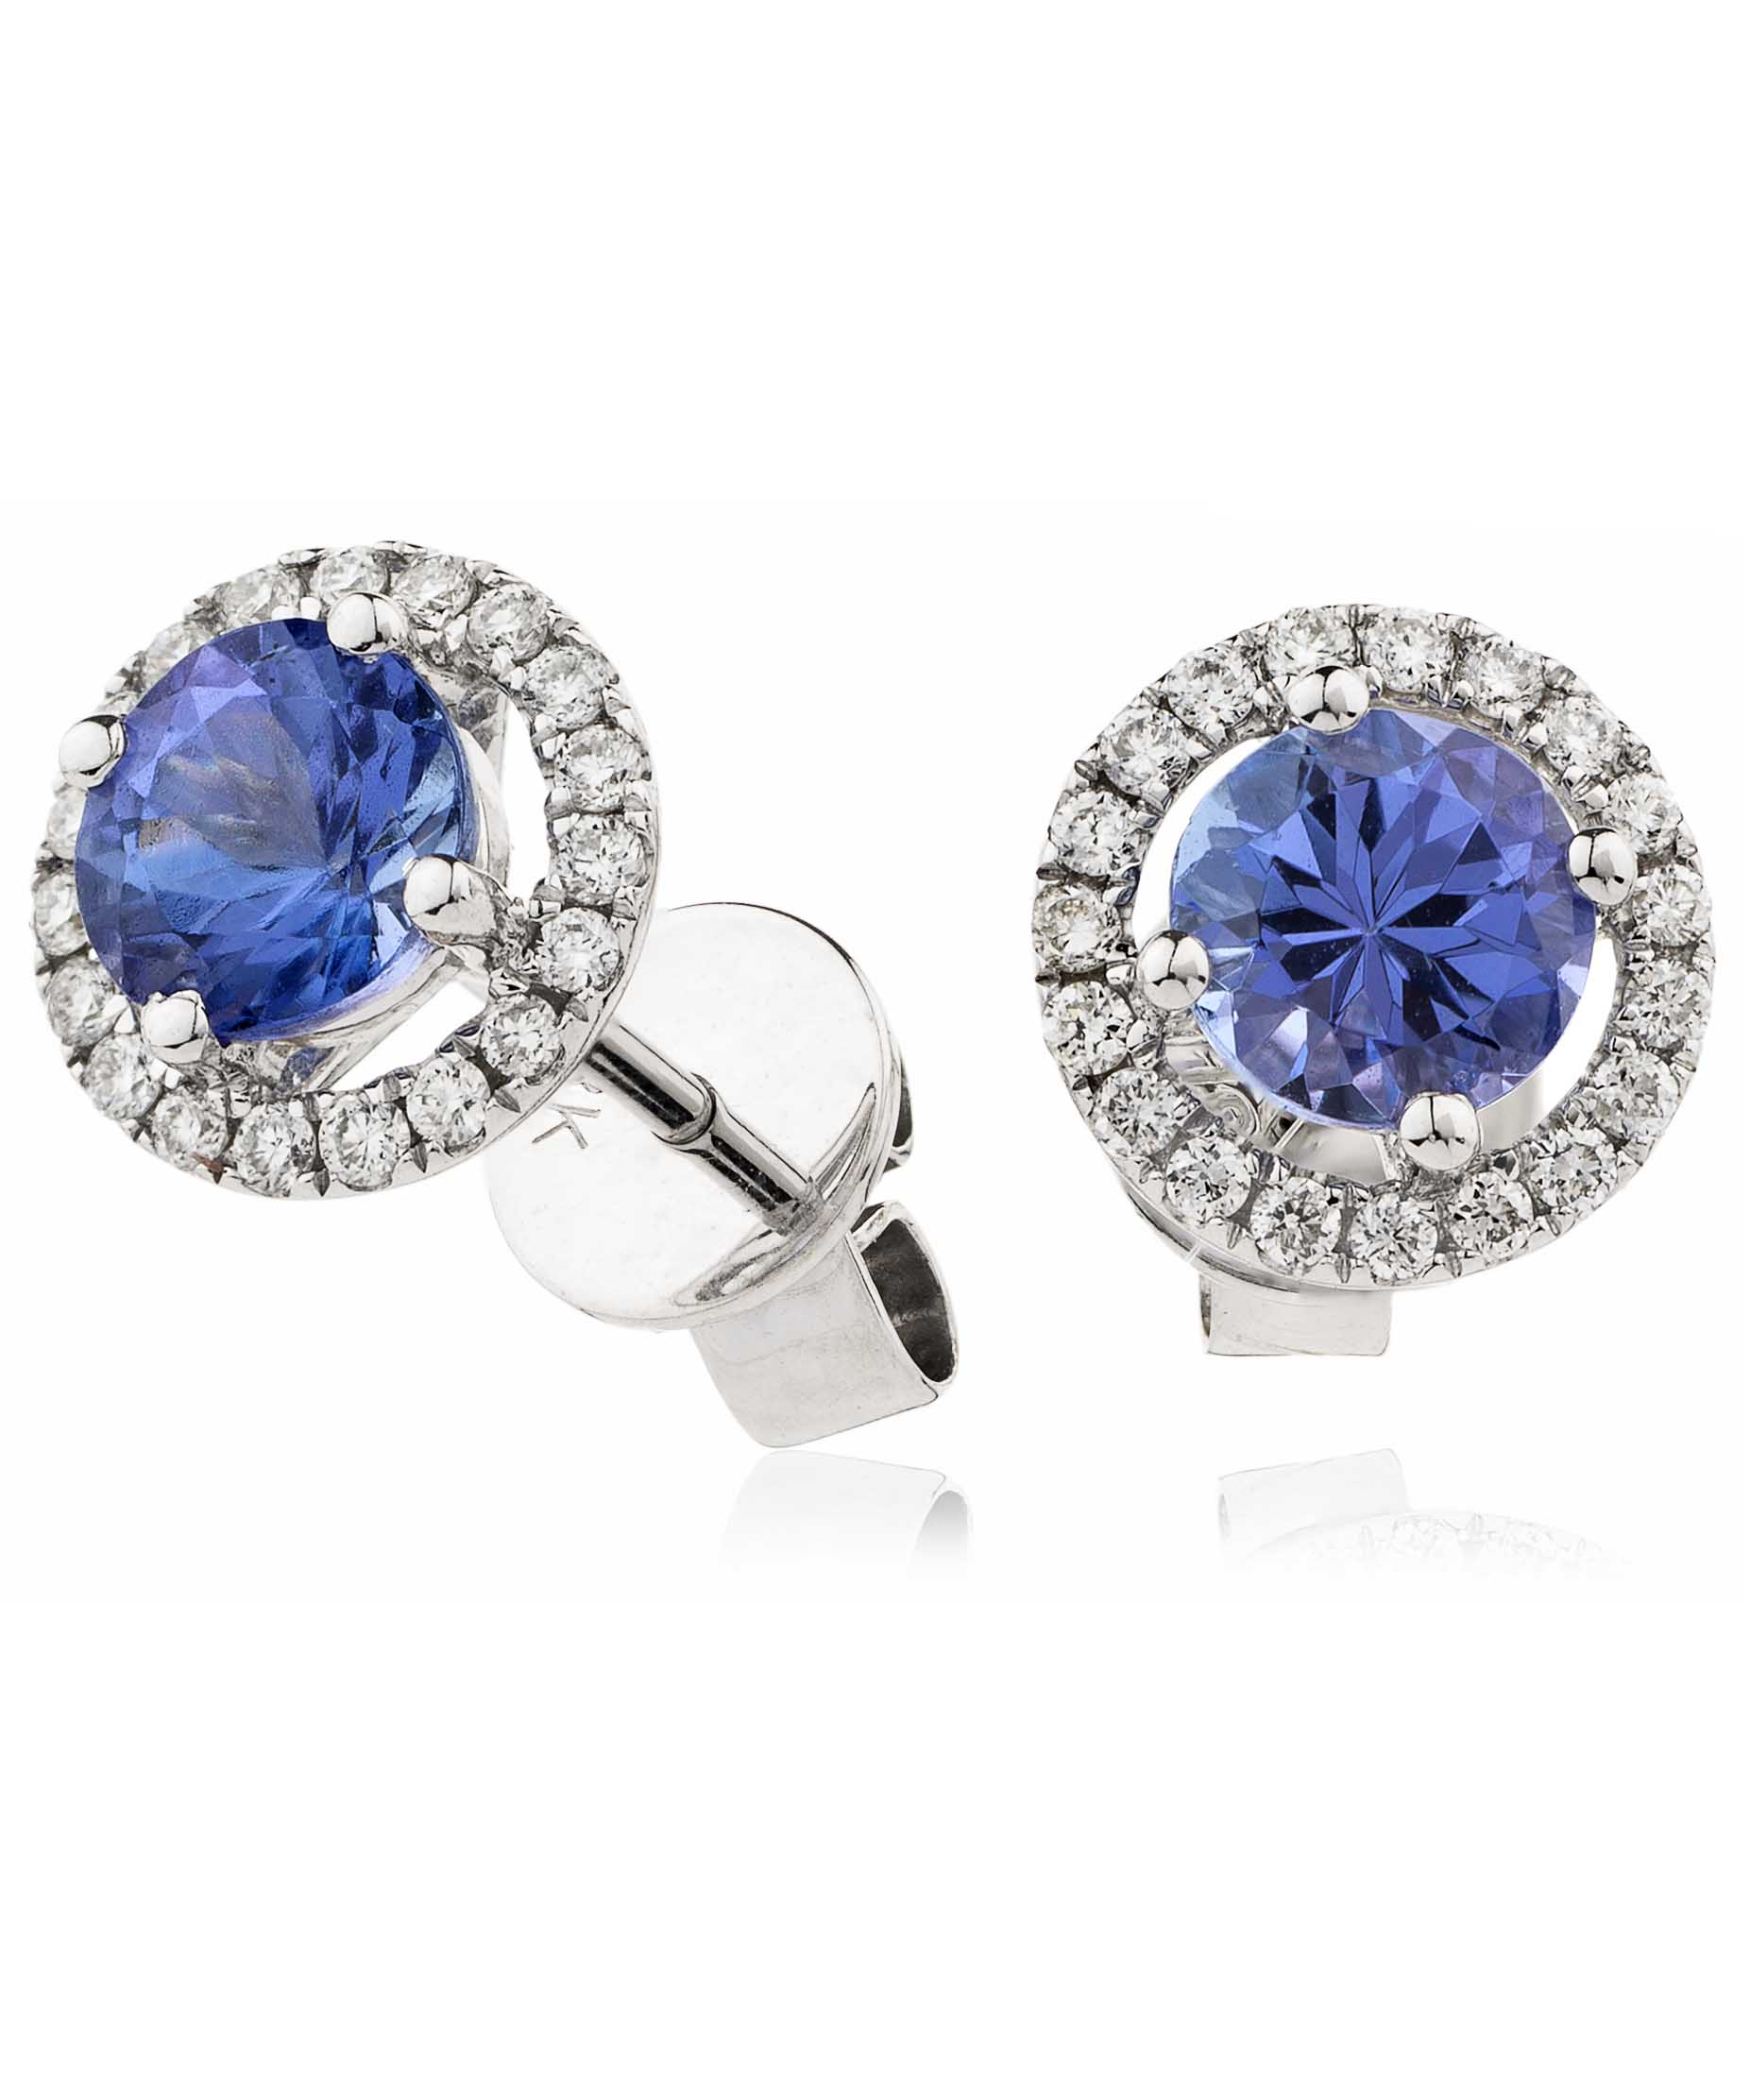 tanzanite earrings carat diamond and gold white